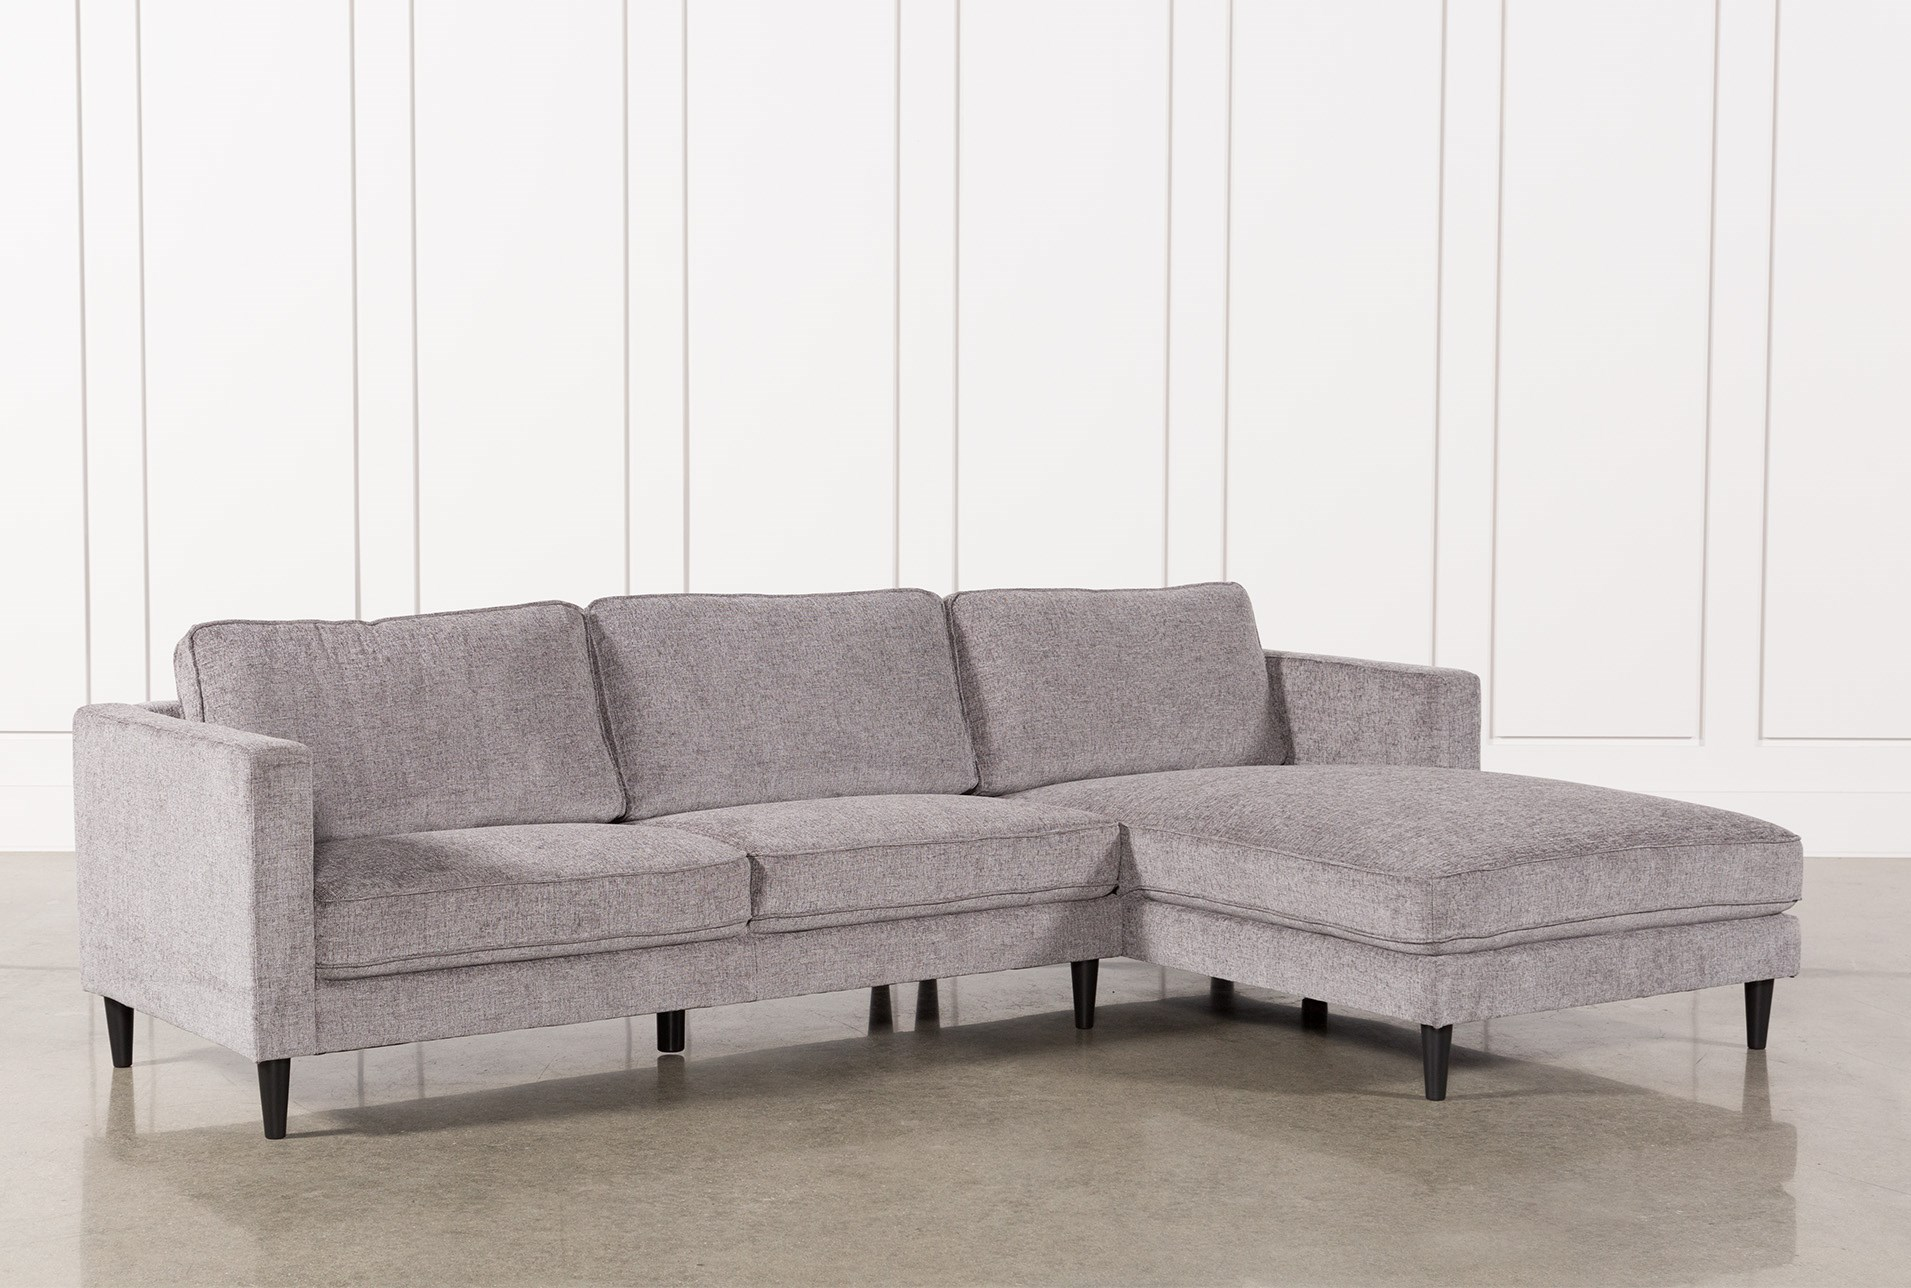 dark new light sofa design intended to chaise leather sushi pertaining ege couch furniture ideas com for with grey gray